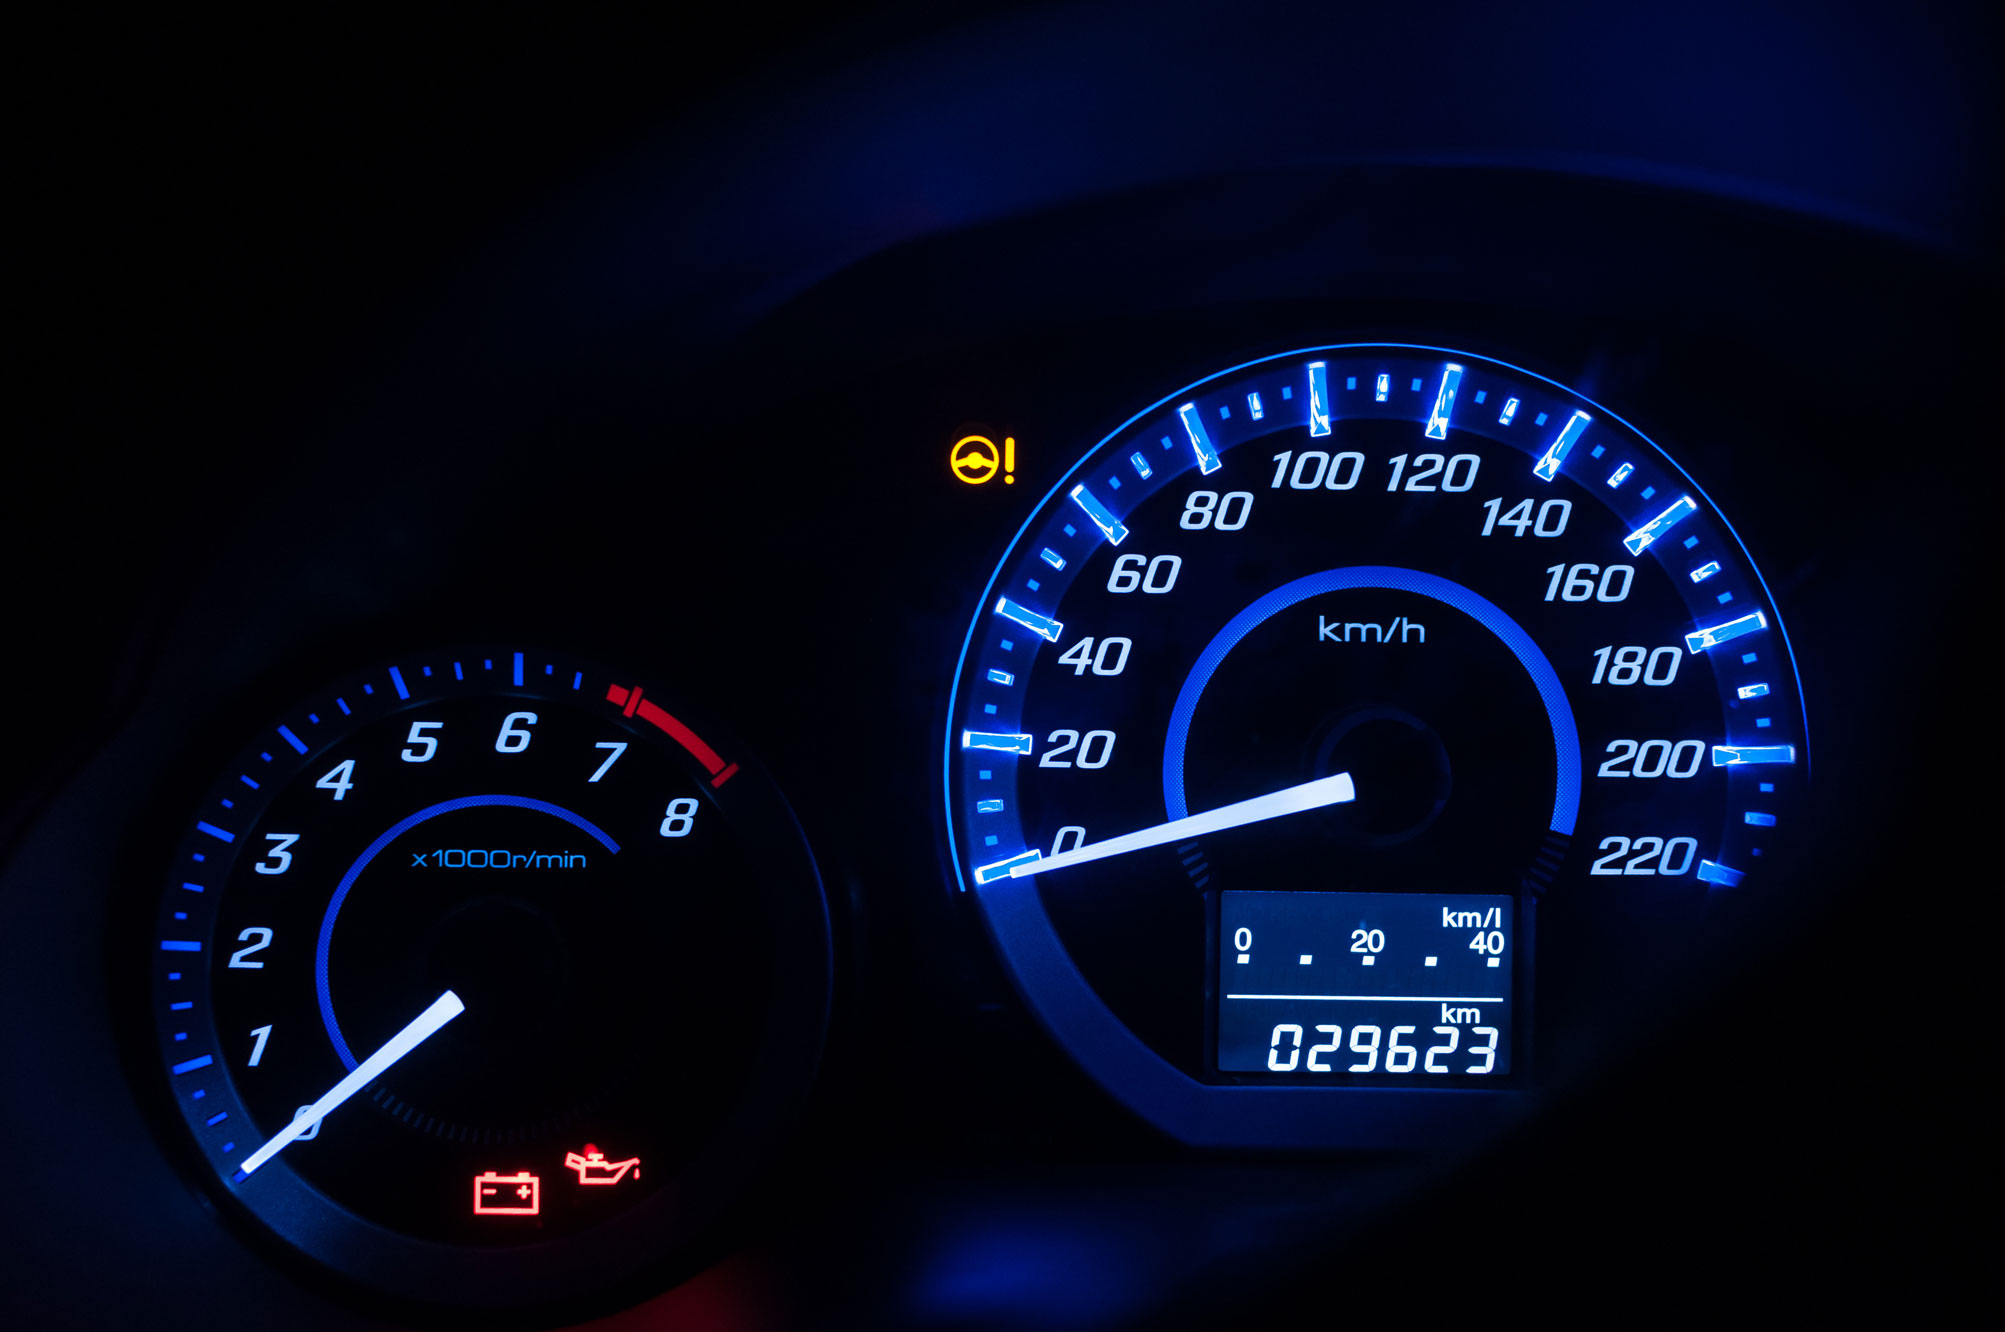 gauges on a car dashboard